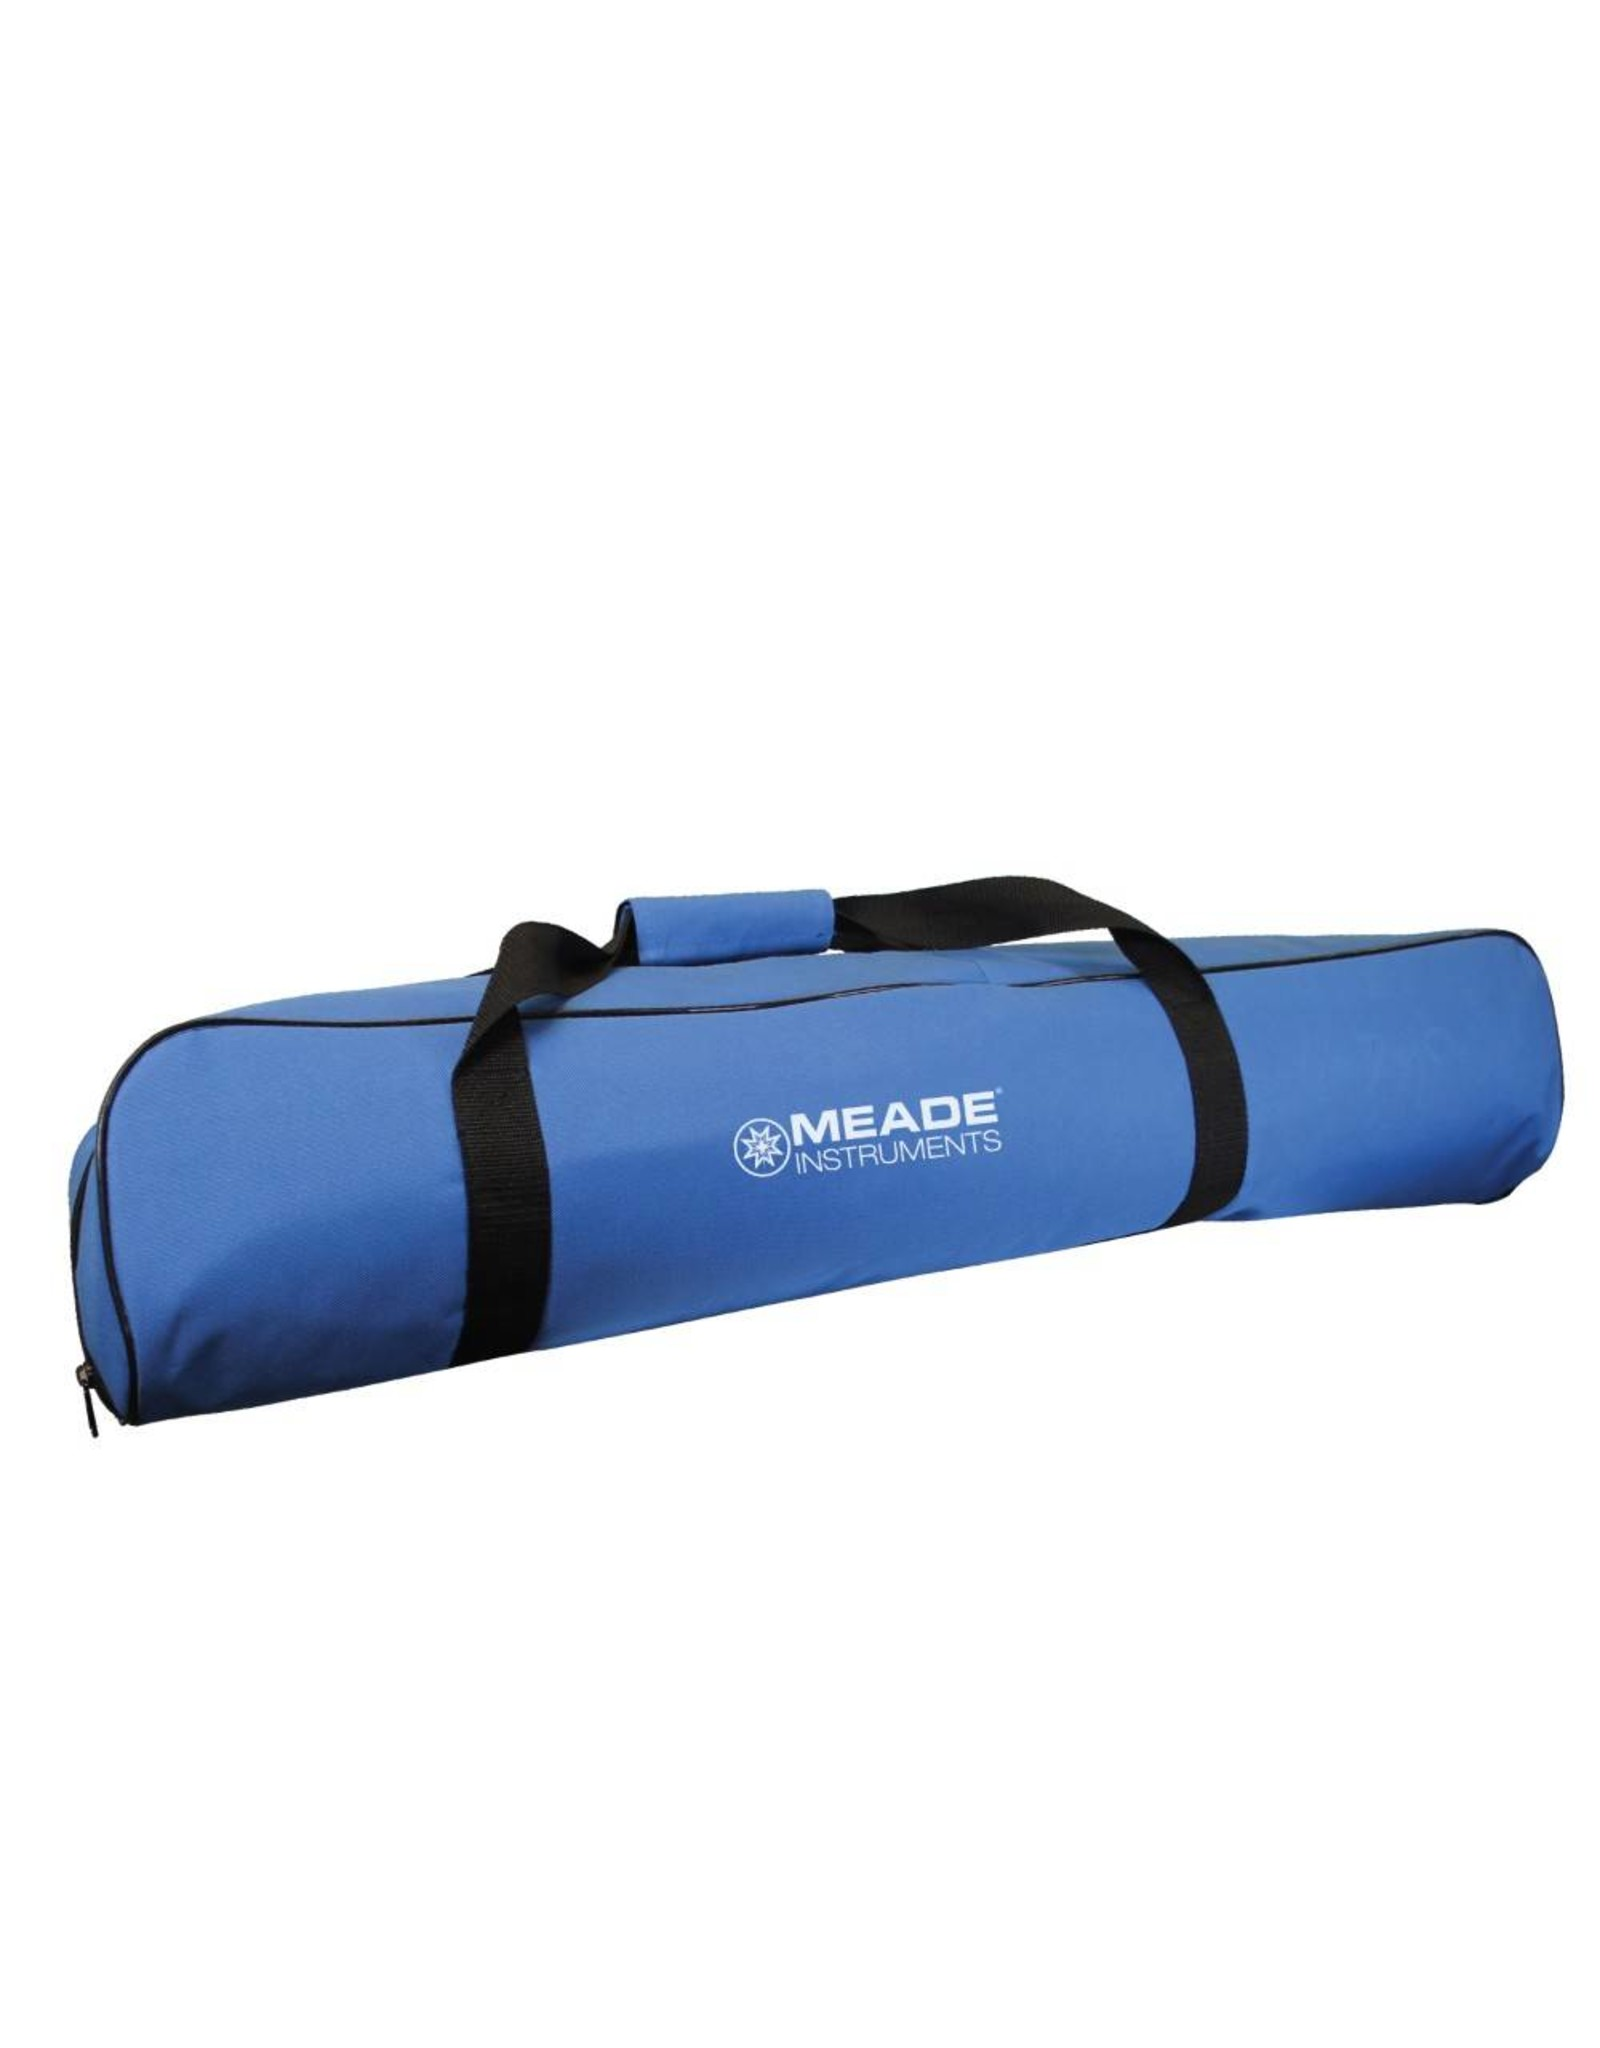 Meade Meade Telescope Bag  to fit many popular brands of 114mm Equatorially Mounted Reflecting Telescopes